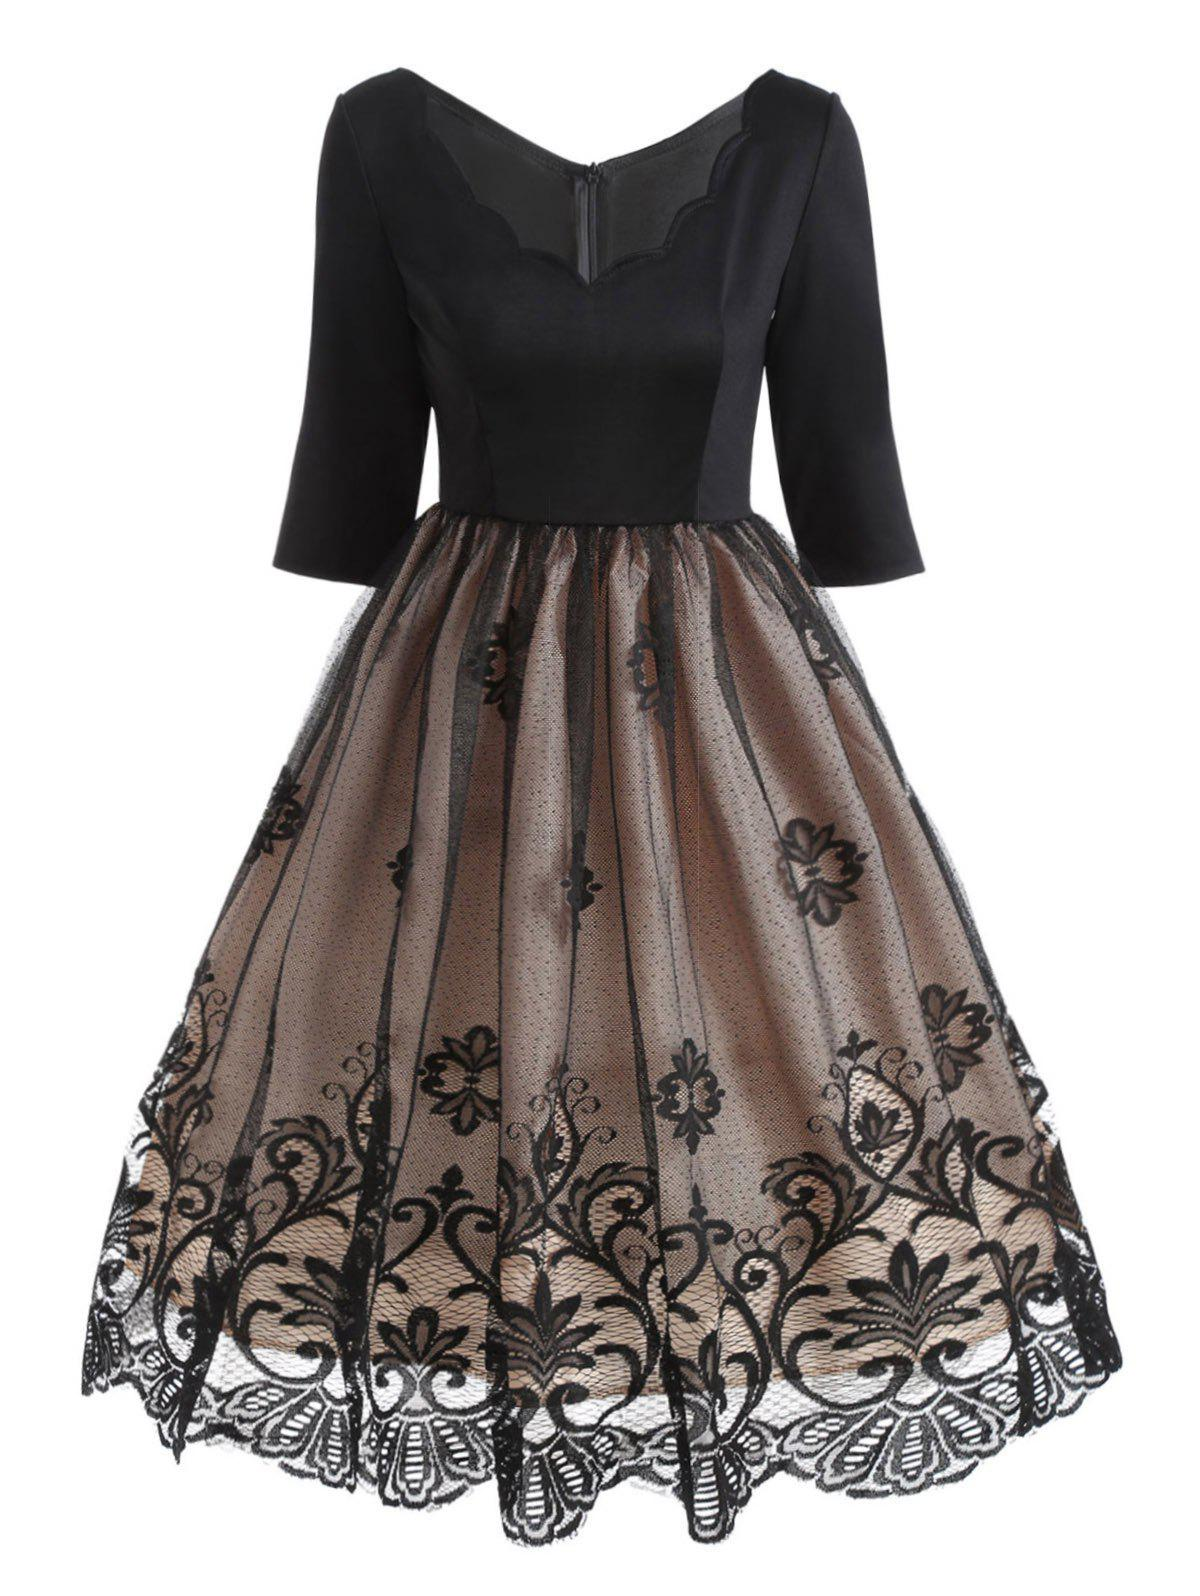 V Neck Floral Lace Panel Vintage DressWOMEN<br><br>Size: L; Color: BLACK; Style: Vintage; Material: Cotton,Polyester; Silhouette: A-Line; Dresses Length: Knee-Length; Neckline: V-Neck; Sleeve Length: Half Sleeves; Embellishment: Lace; Pattern Type: Solid; With Belt: No; Season: Fall; Weight: 0.3800kg; Package Contents: 1 x Dress;